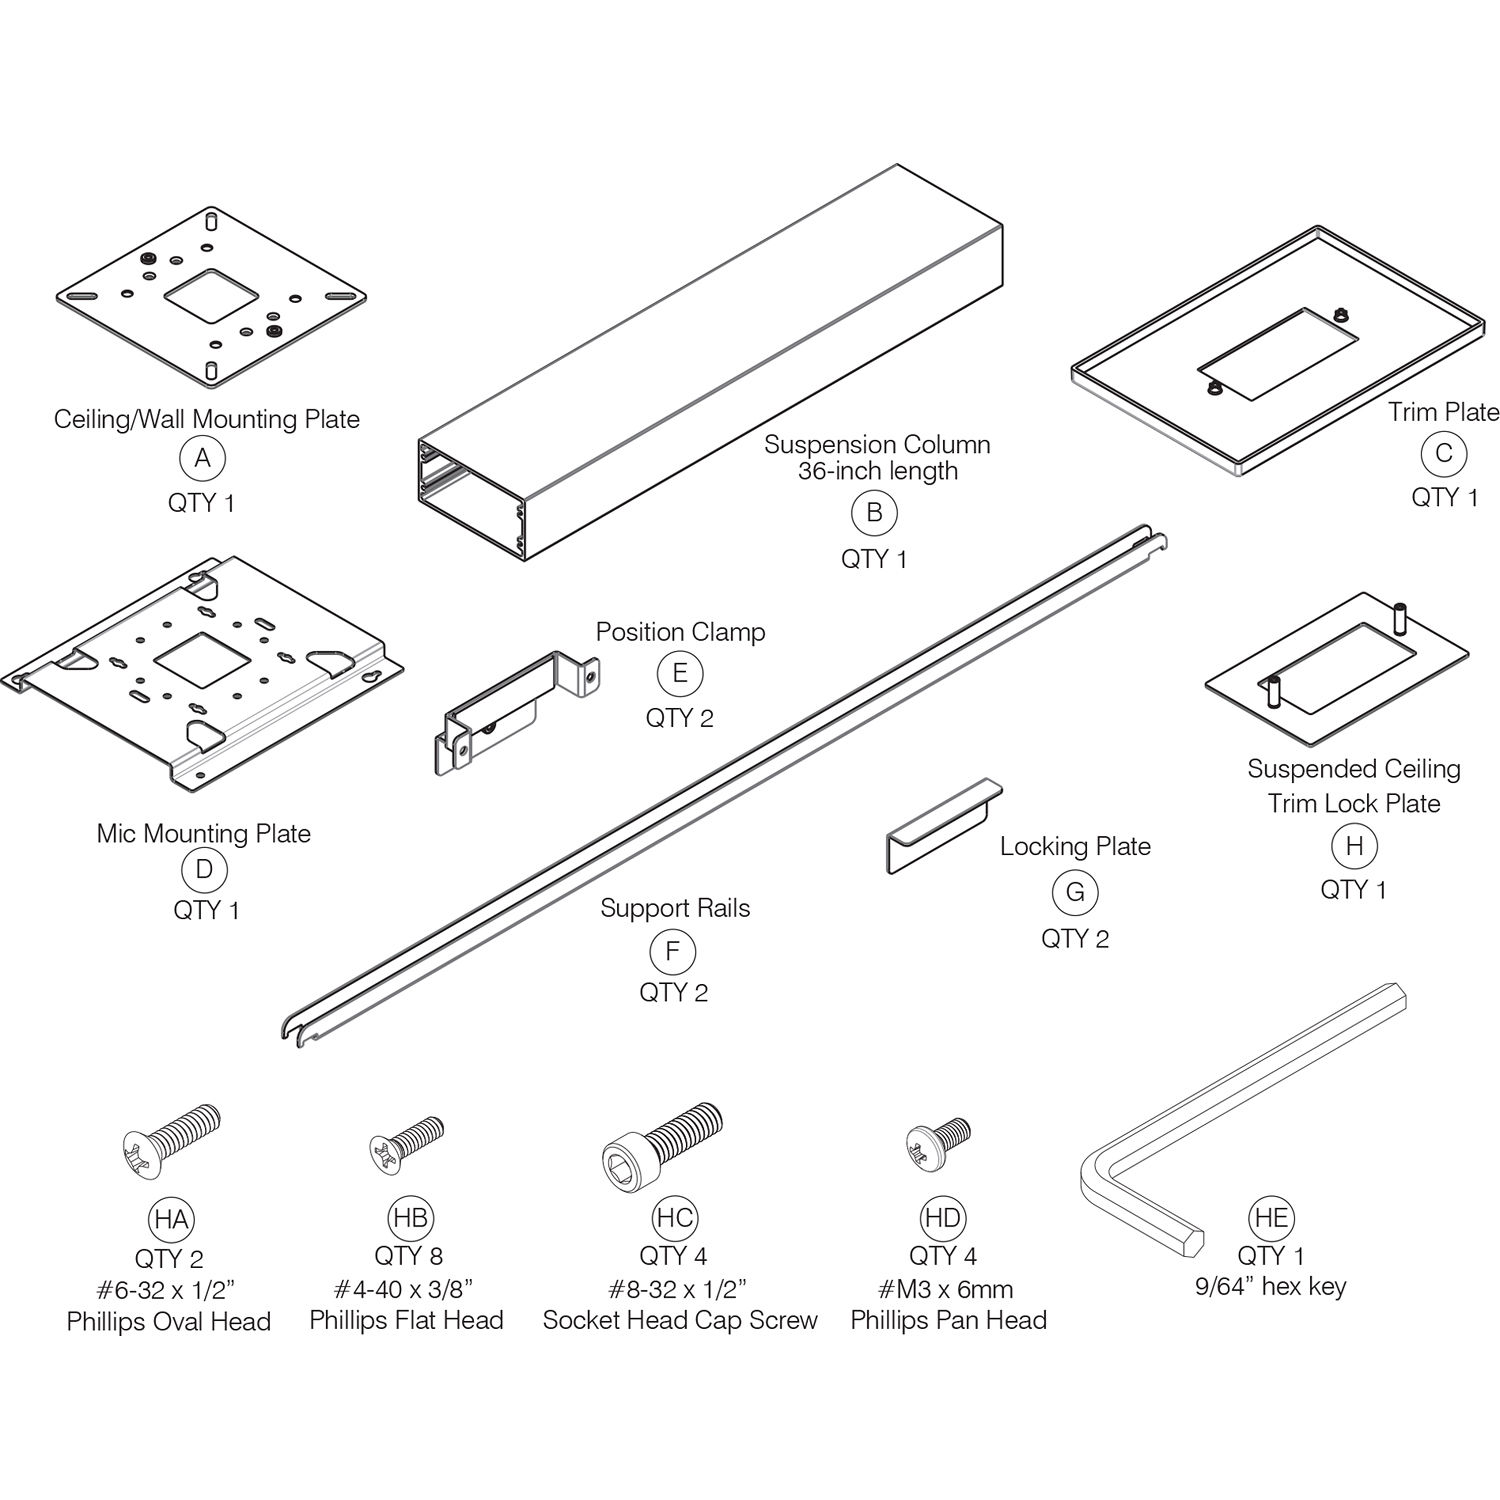 Clearone Ceiling Mount Kit With 36 Suspension